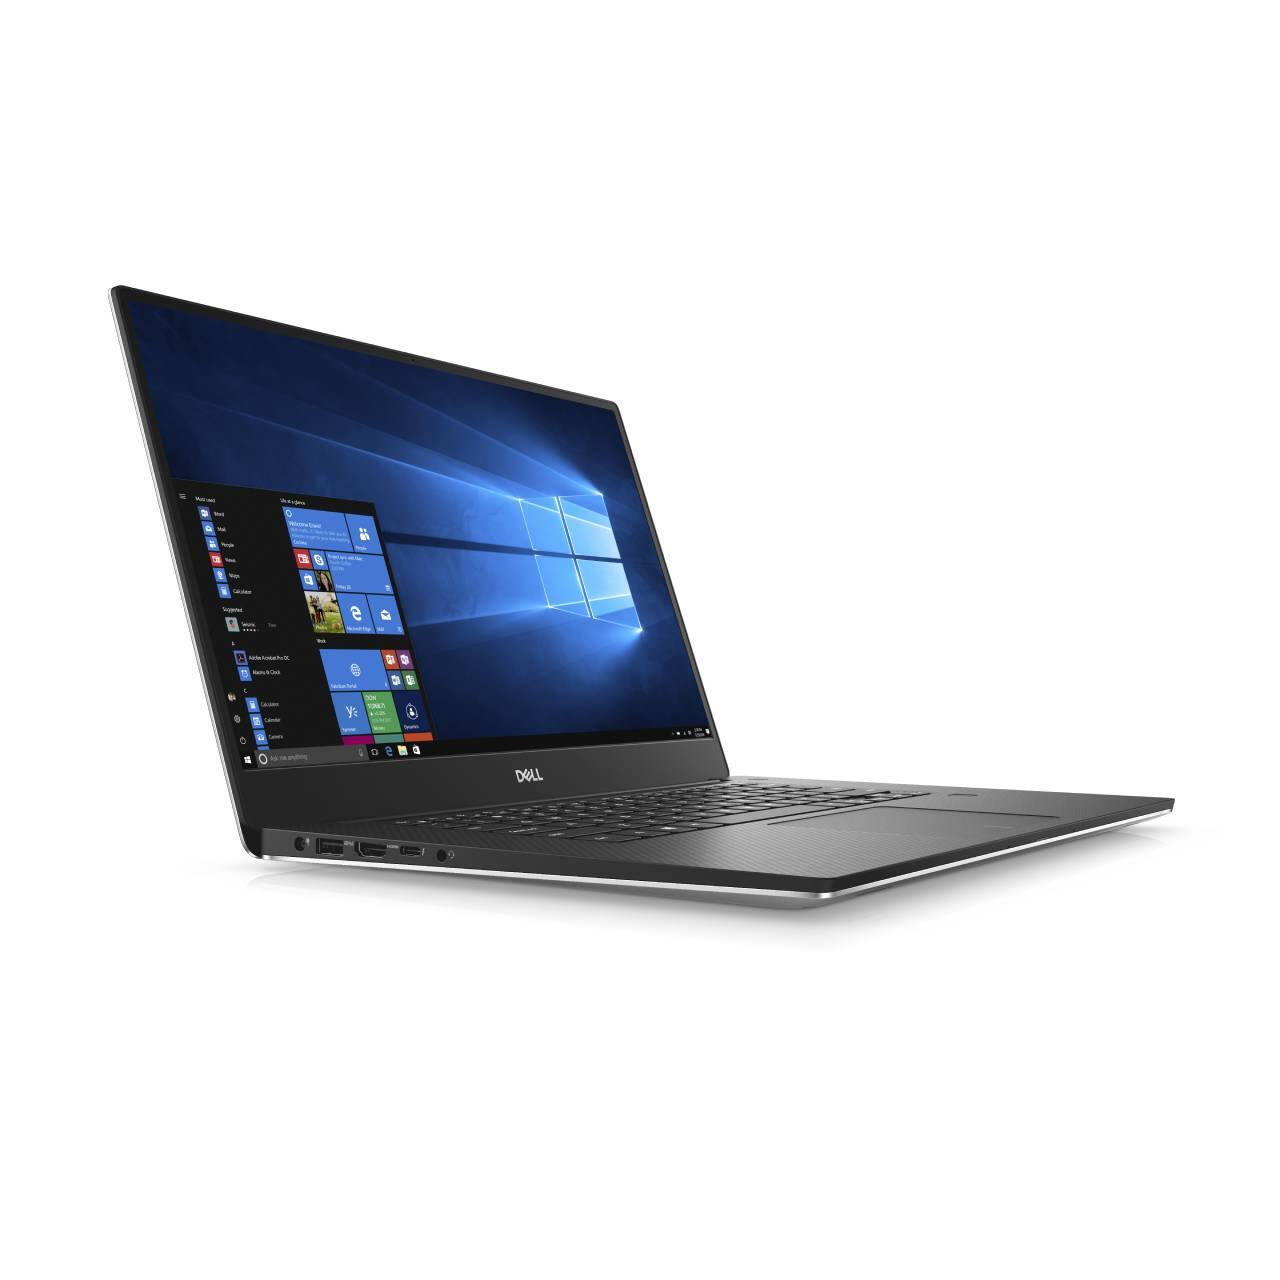 Dell XPS 15 7590: i7-9750H, GTX 1650, 16GB RAM, 256GB SSD, 1080p + $437 Rakuten Point @ $1250